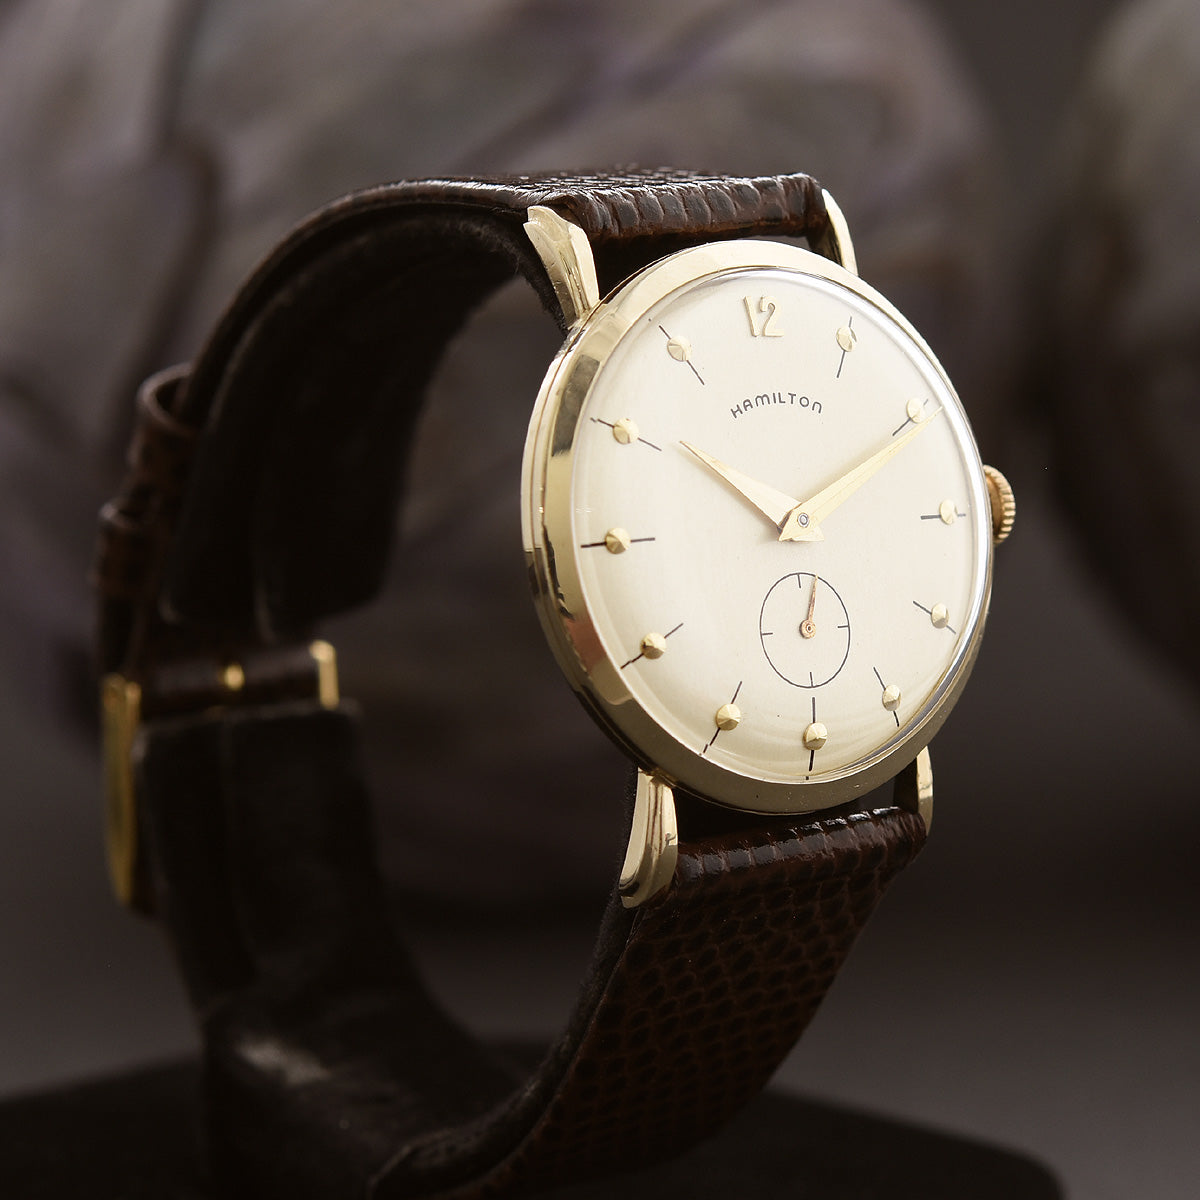 1955 HAMILTON USA 'Bradford' 14K Gold Gents Dress Watch